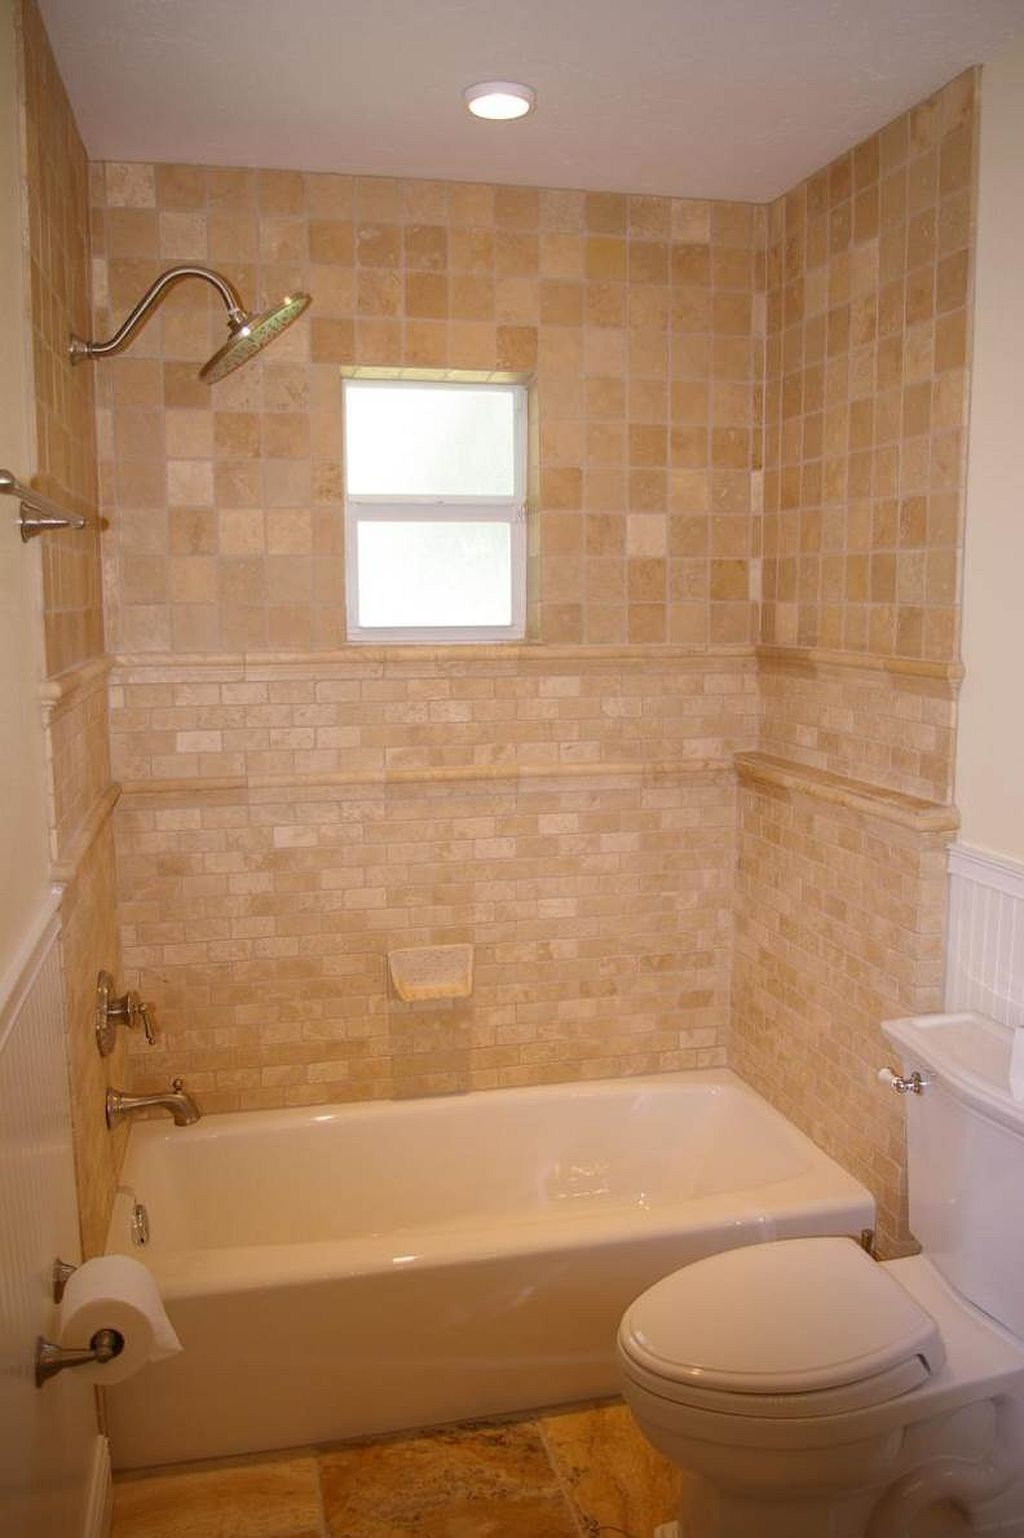 Small Bathroom Tub Shower Combo Ideas 22 Bathroom Tub Shower Combo Bathroom Tile Designs Small Bathroom